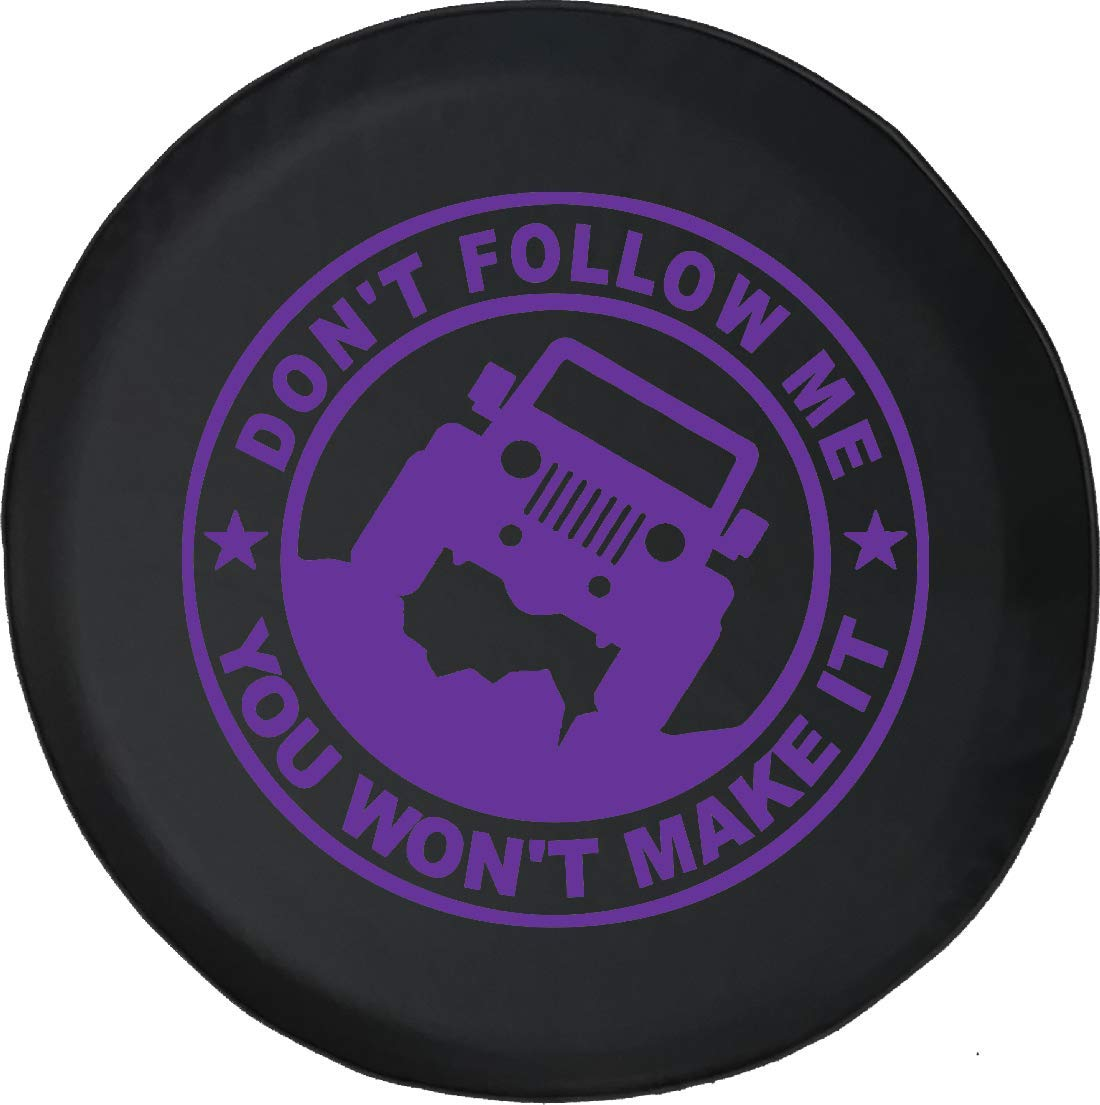 Jeep Tire Cover for Spare Tire Dont Follow Me Jeep Black 32 Inch You Wont Make It